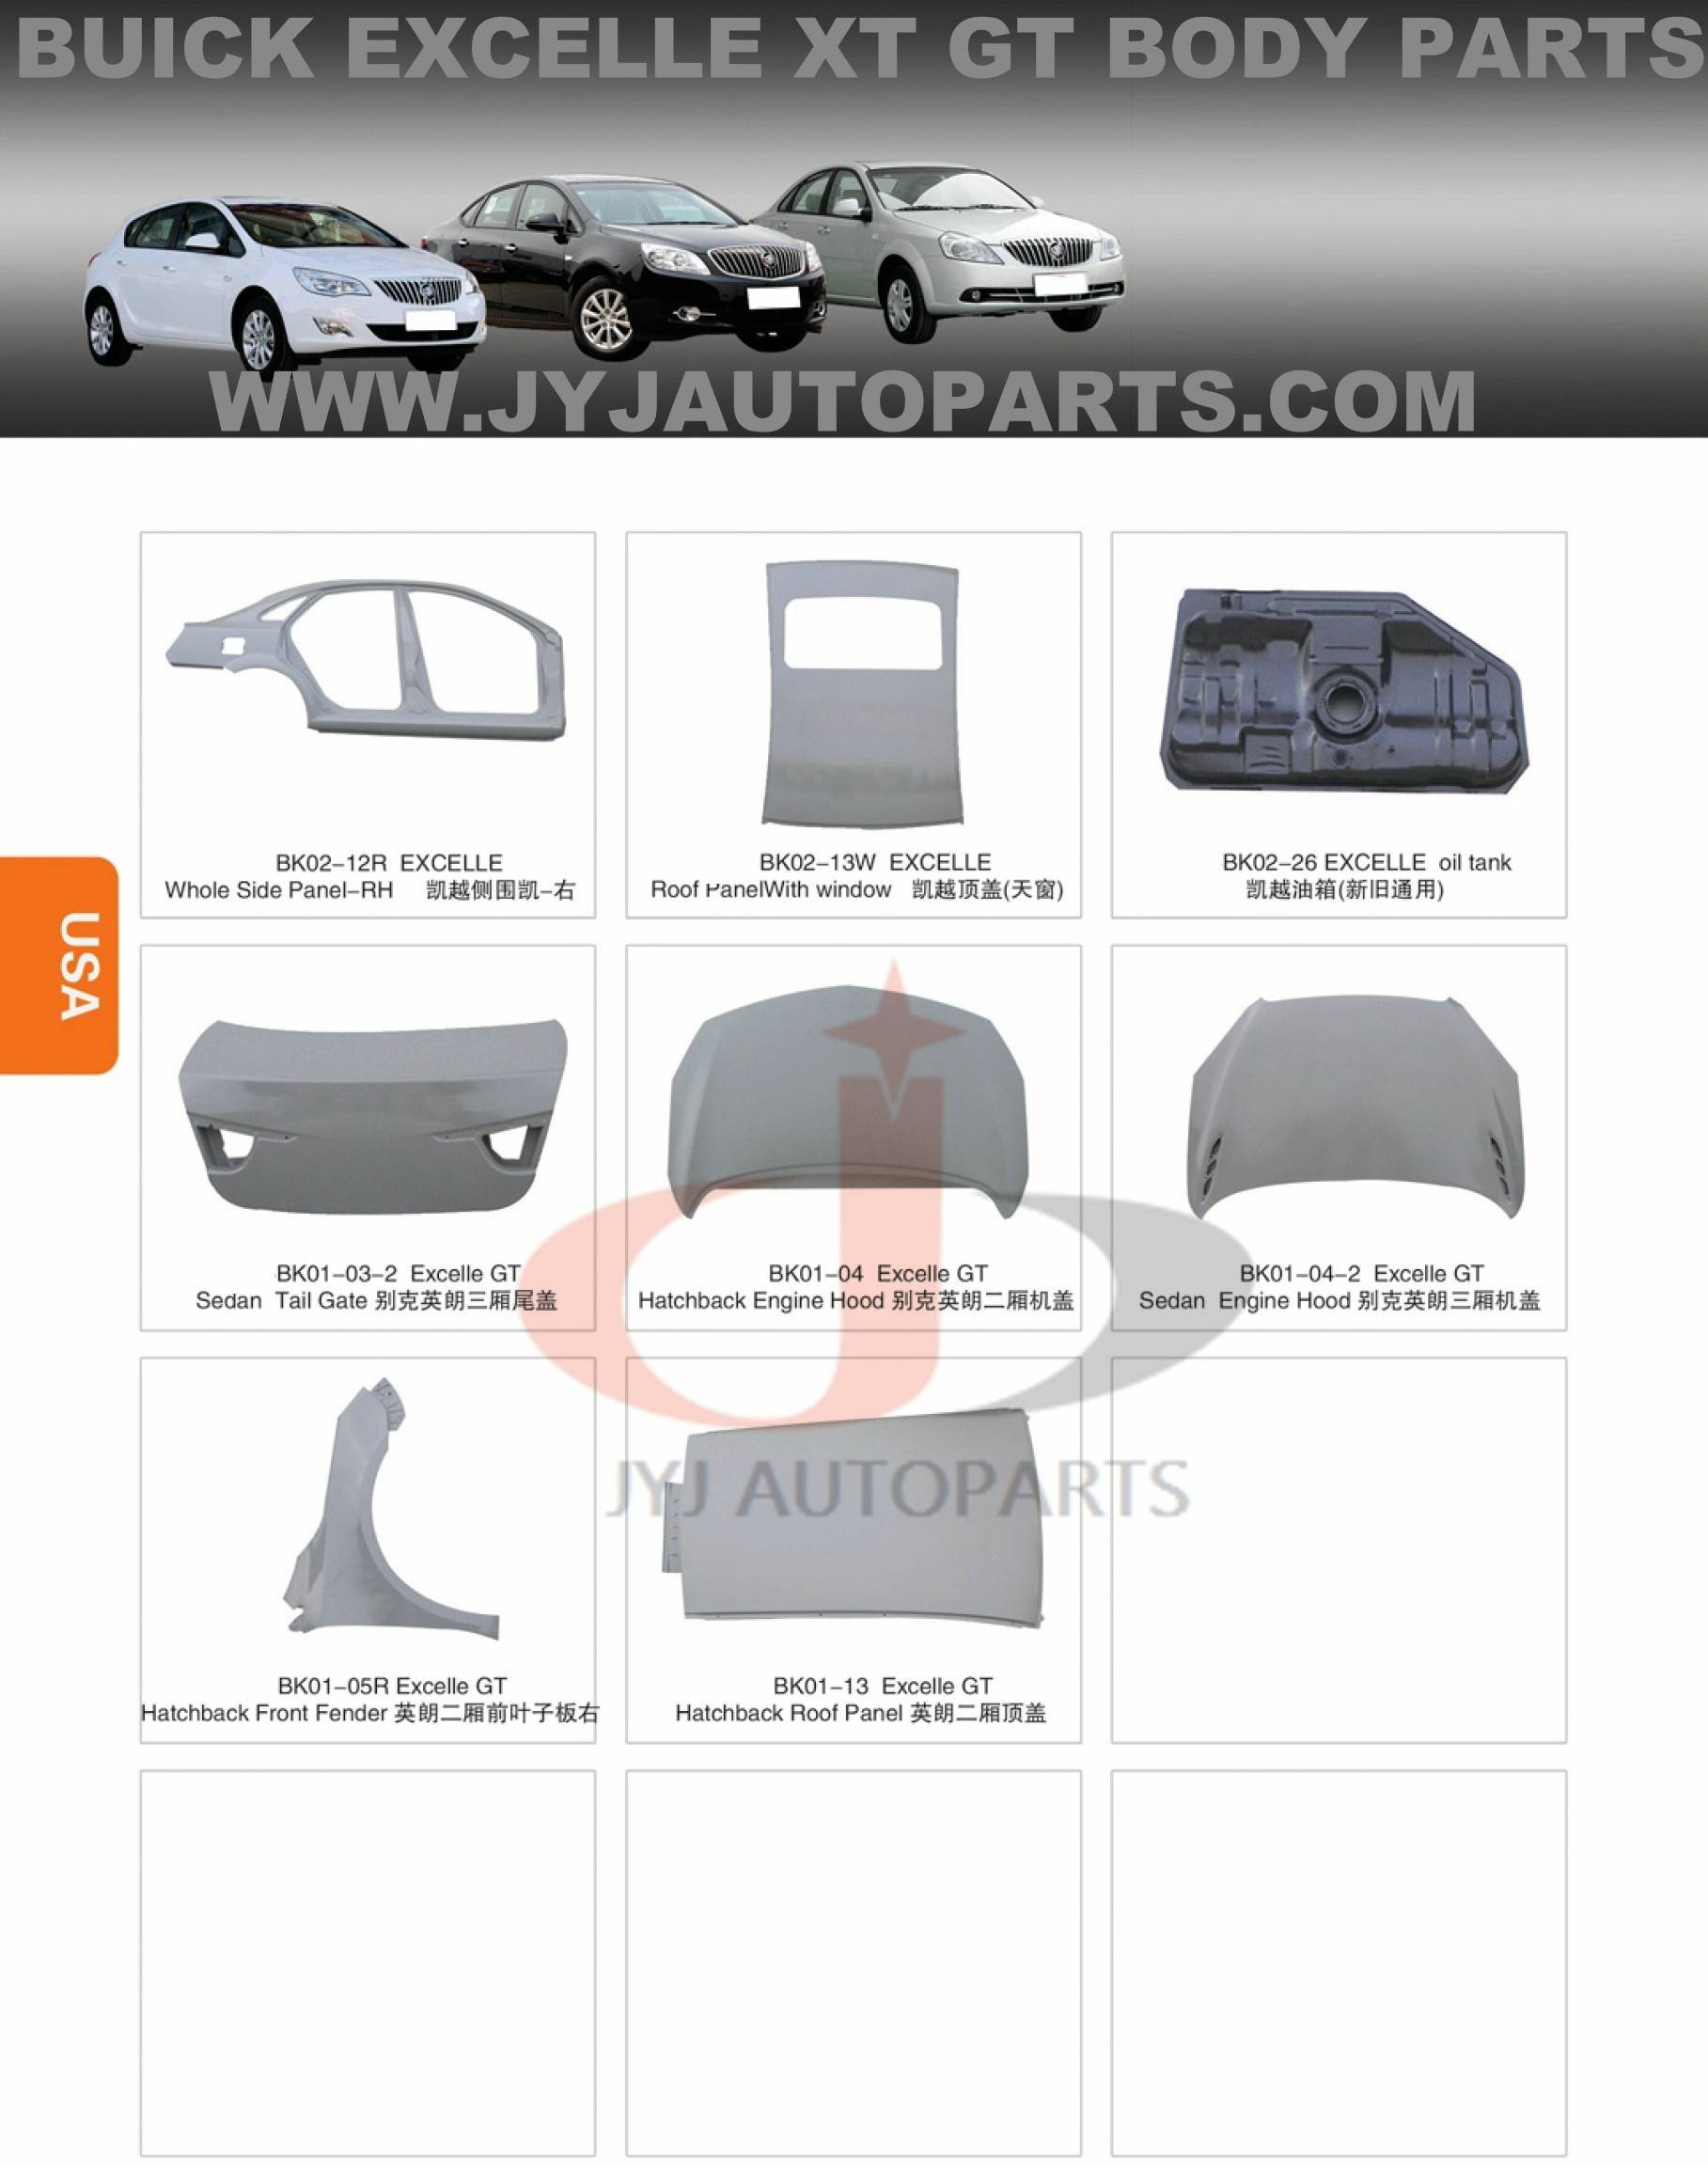 BUICK Excelle body parts